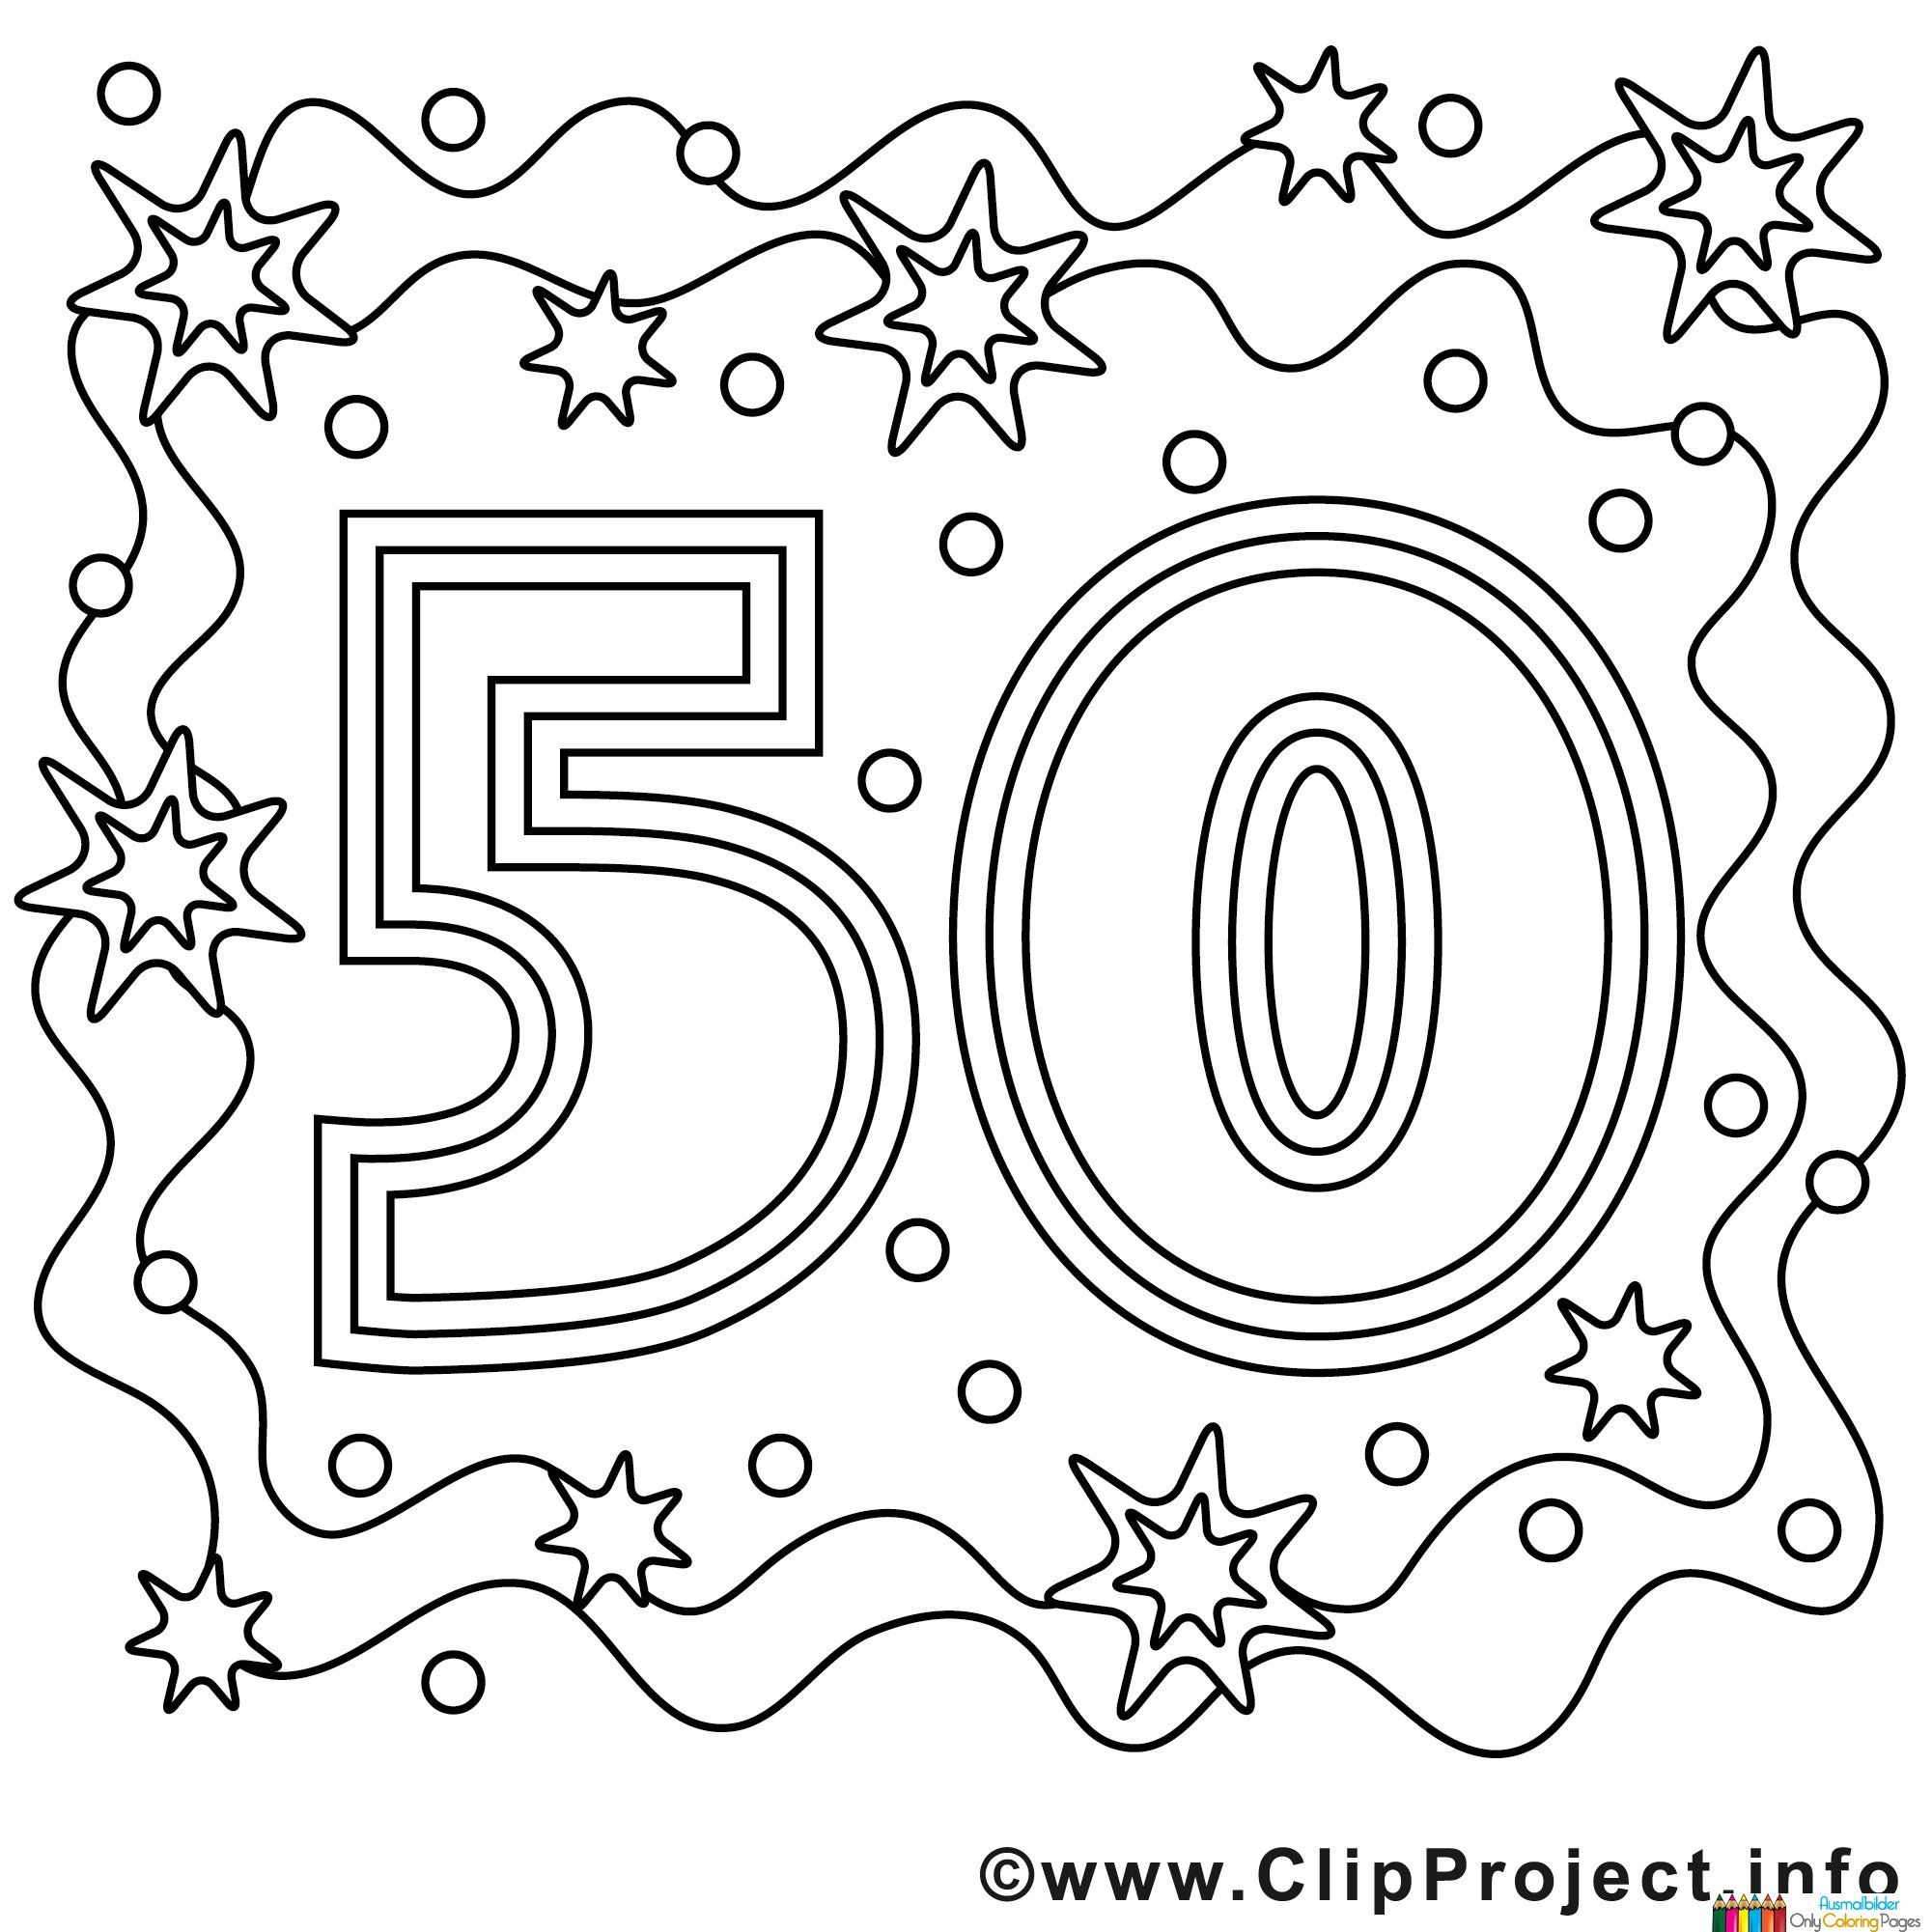 50th birthday coloring page 50th birthday cake coloring pages page birthday 50th coloring